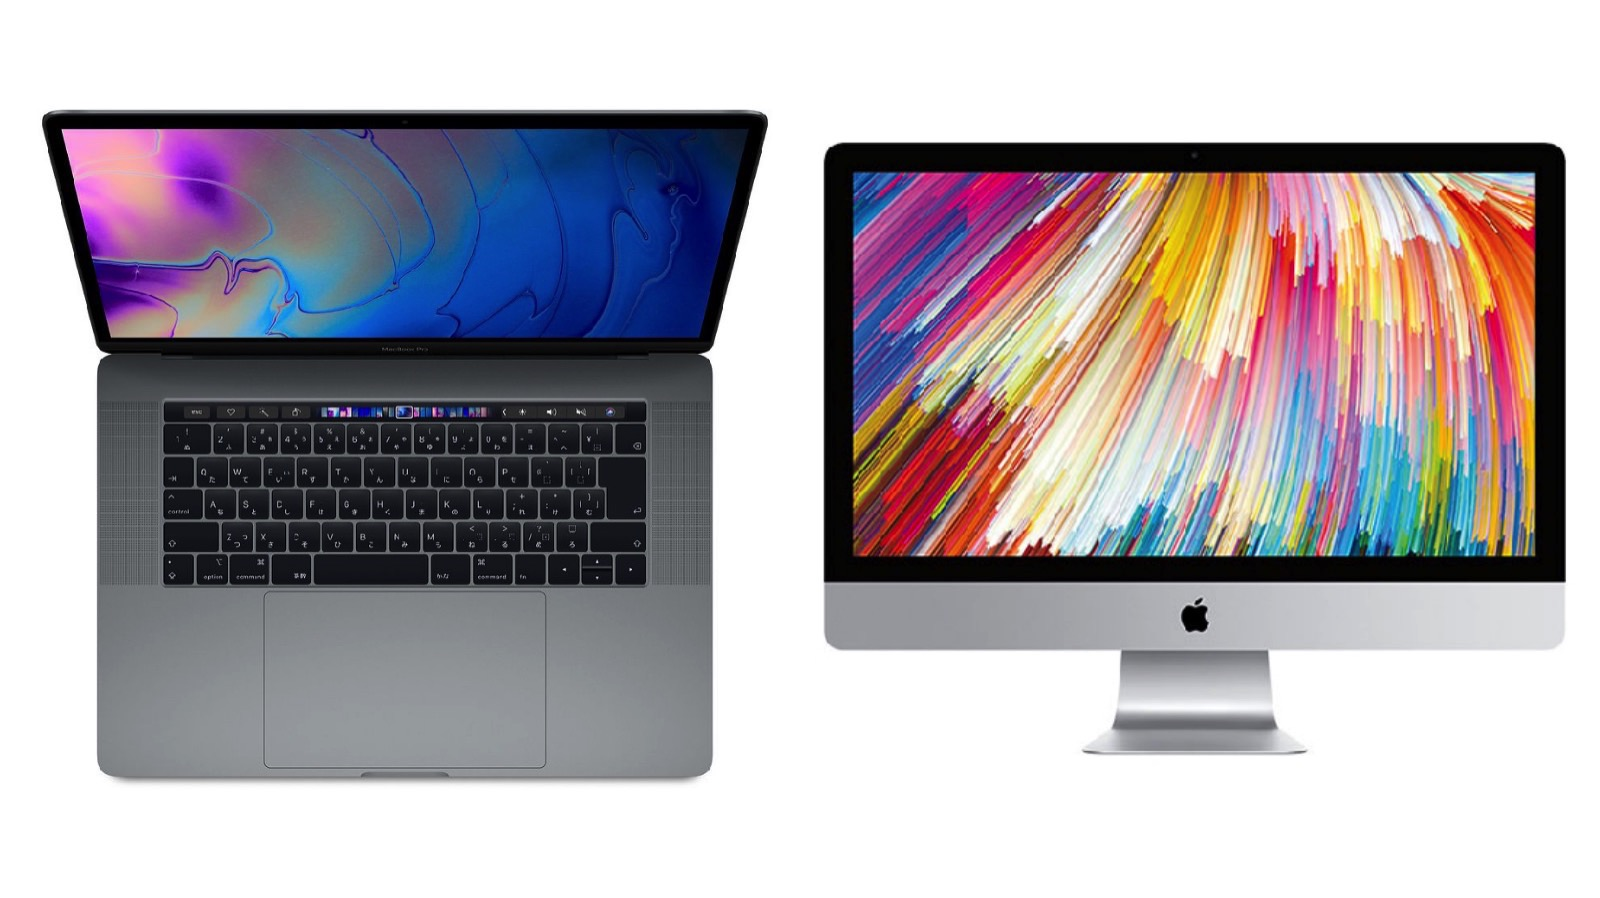 Macbook pro 2018 corei9 vs imac5k2017